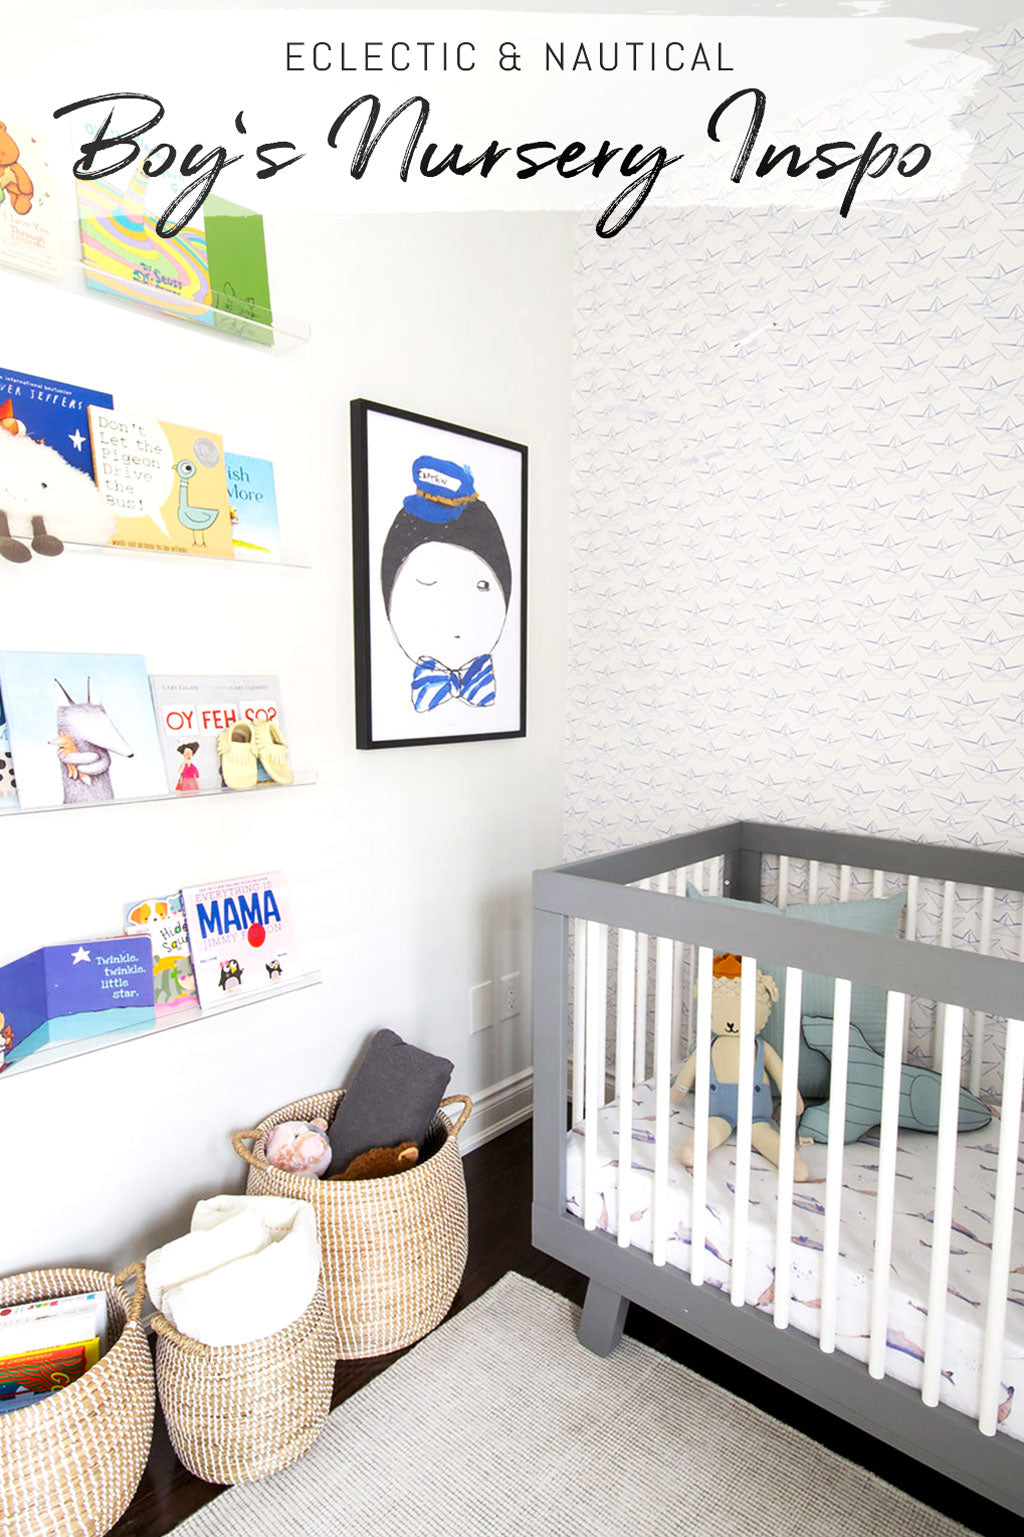 Modern and bright baby nursery interior with coastal nautical style and colorful eclectic interior decor